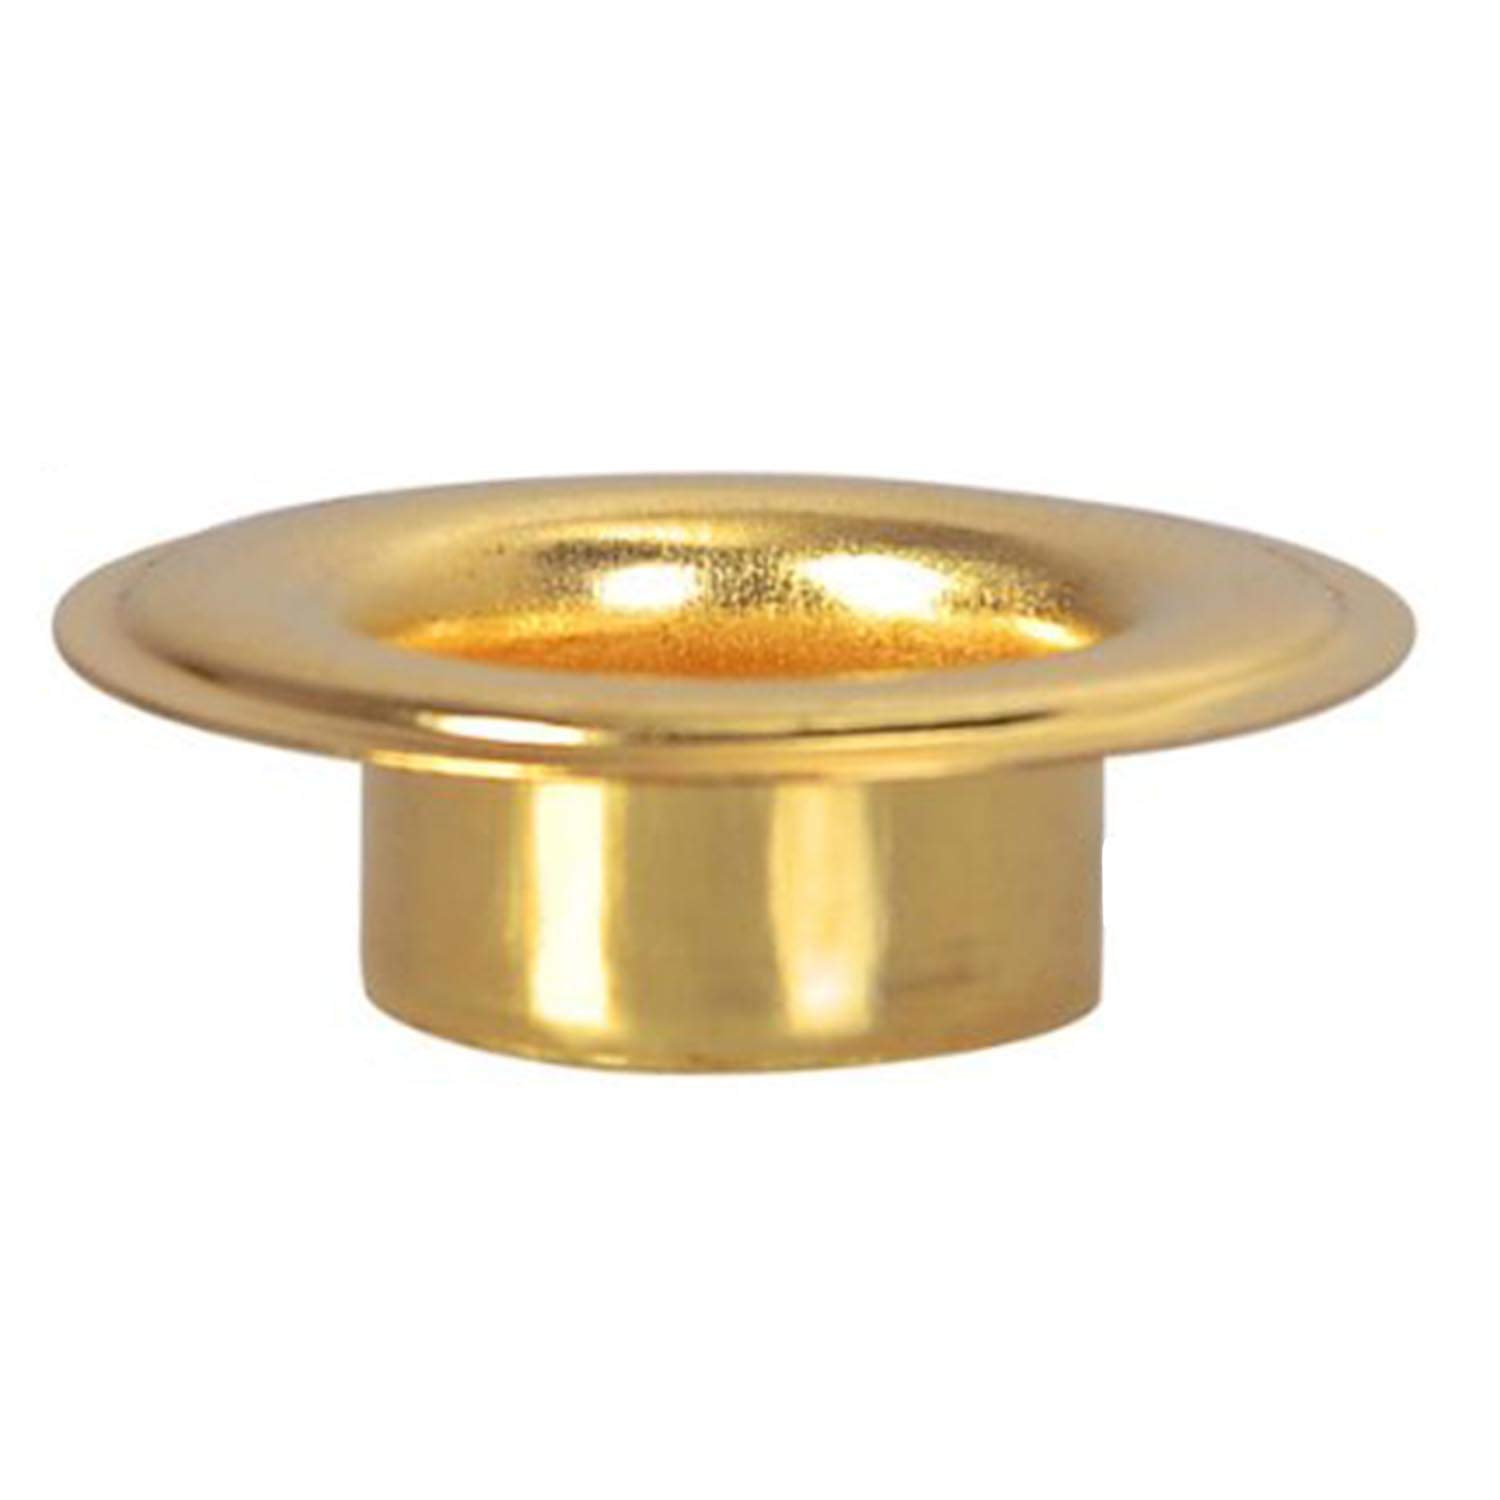 1/2'' #4 Brass Grommets and Washers 1000 Package